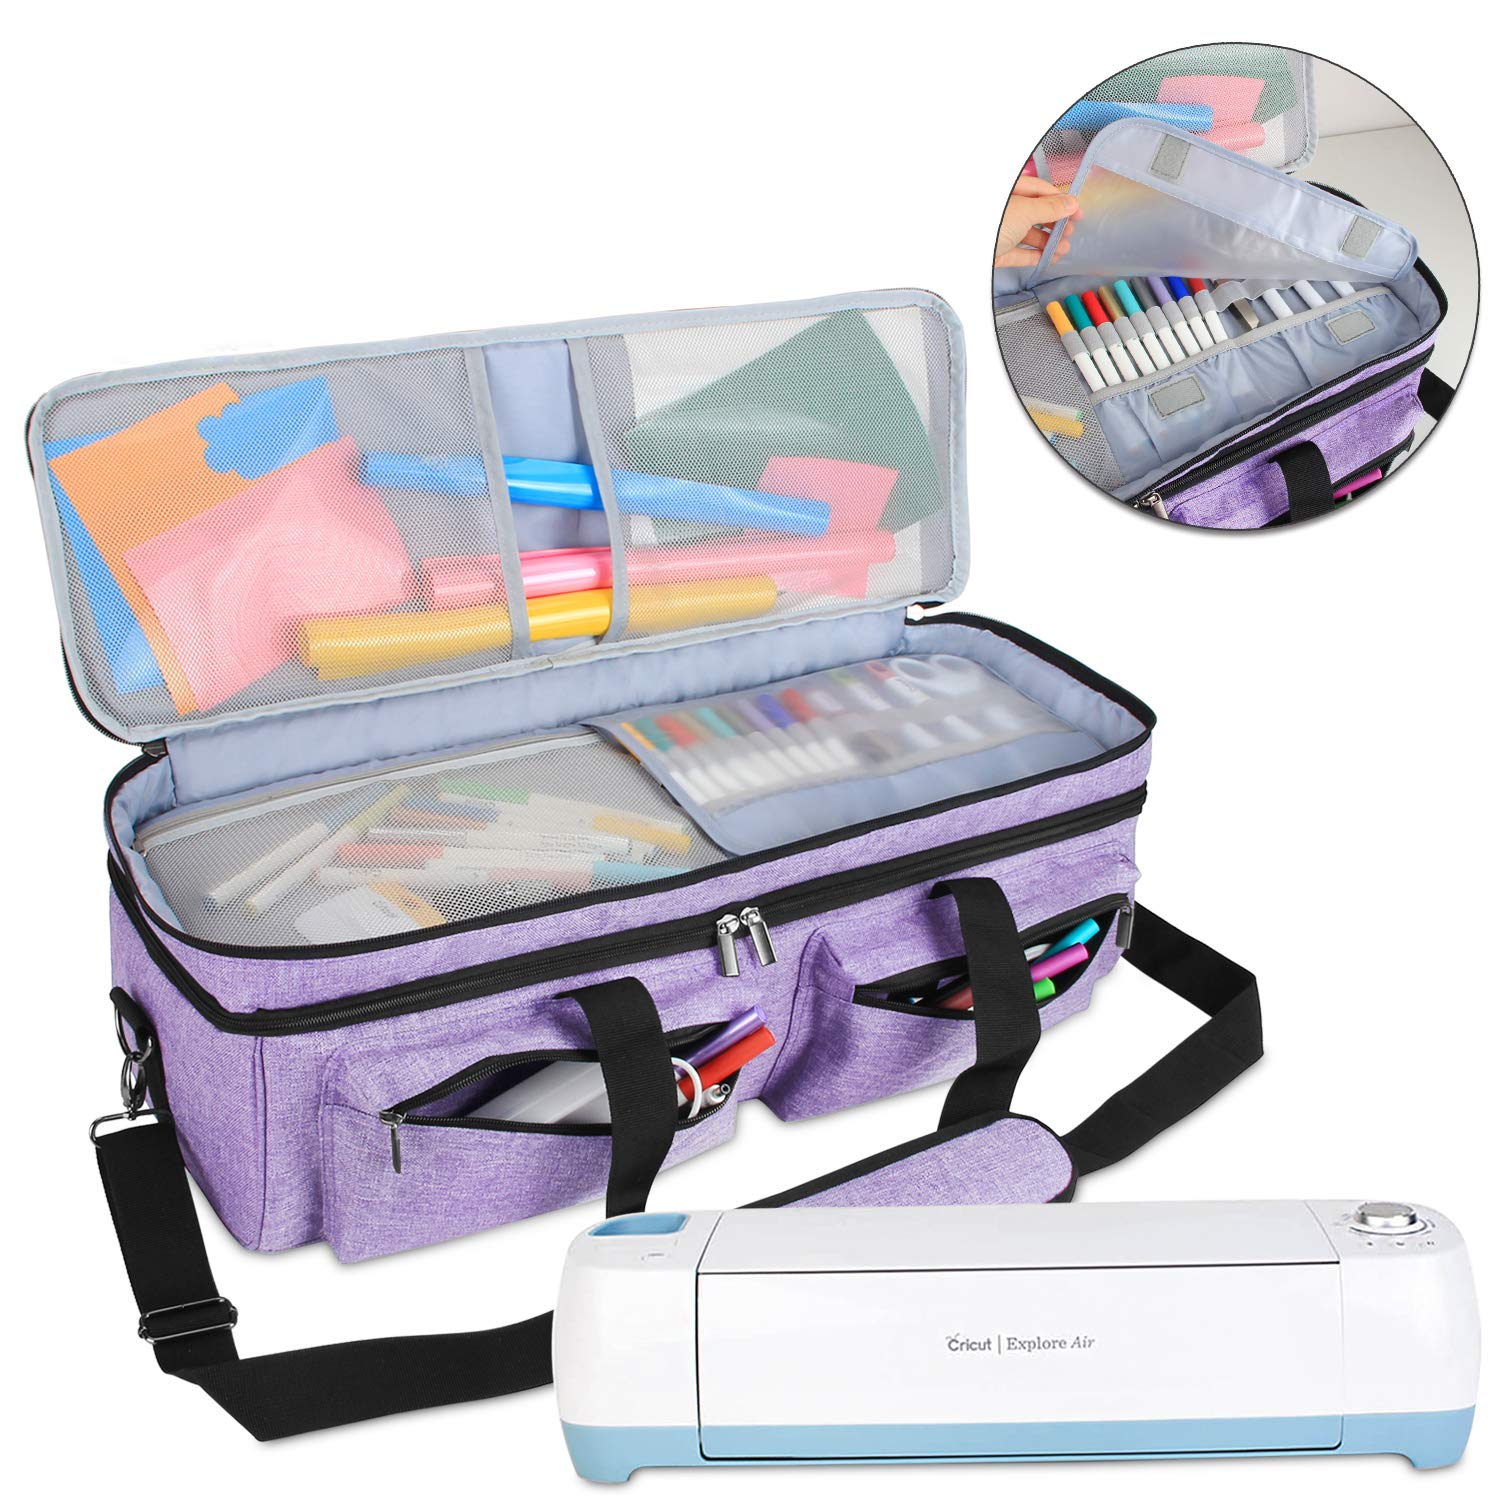 Luxja Double-Layer Bag Compatible with Cricut Explore Air (Air2) and Maker, Carrying Bag Compatible with Cricut Die-Cut Machine and Supplies (Bag Only, Patent Pending), Lavender